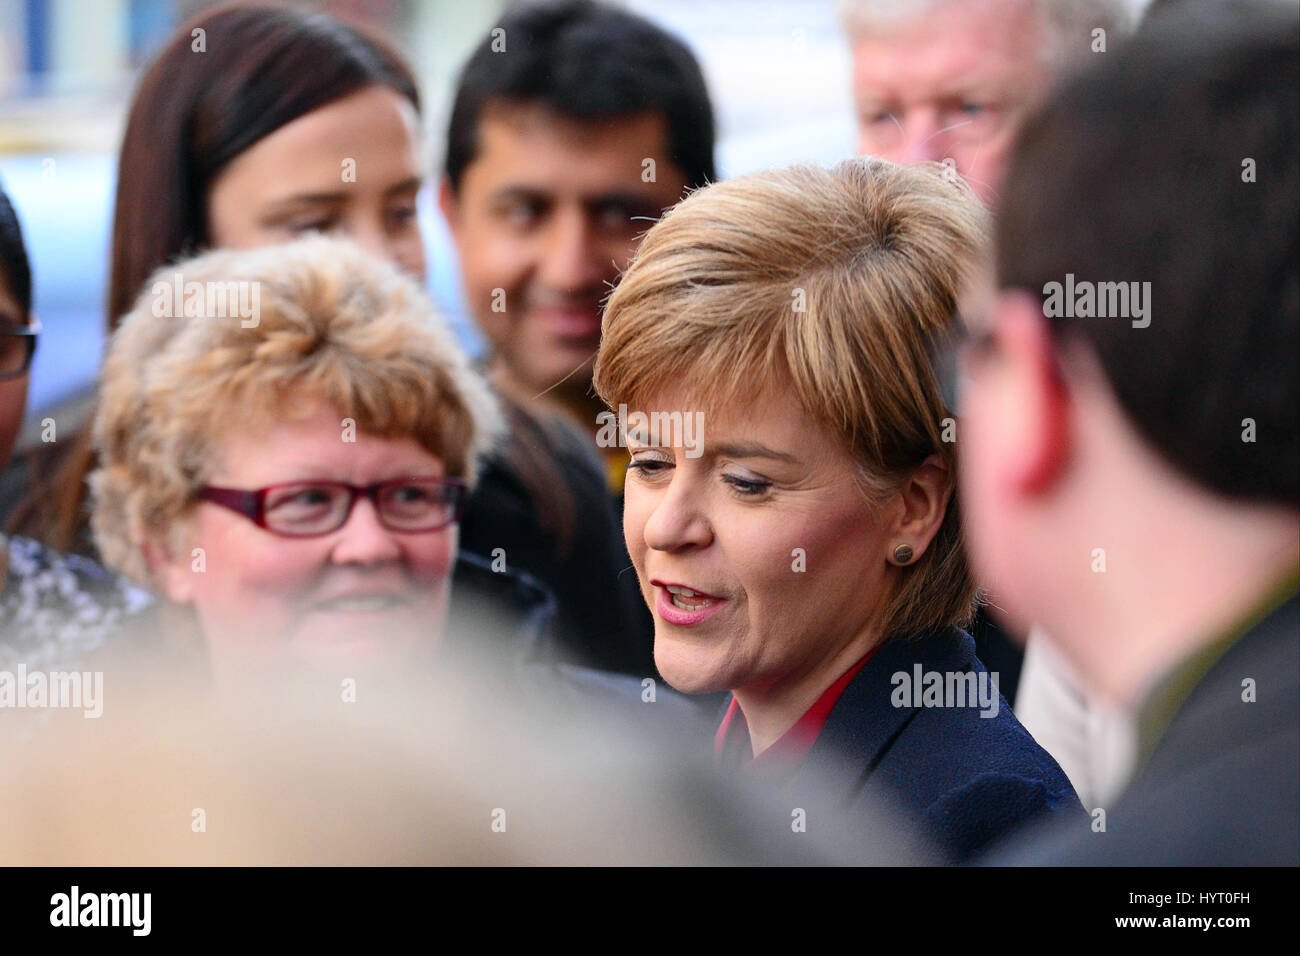 SNP leader and First Minister Nicola Sturgeon in the midst a crowd of well-wishers on a walkabout in Dunfermline - Stock Image